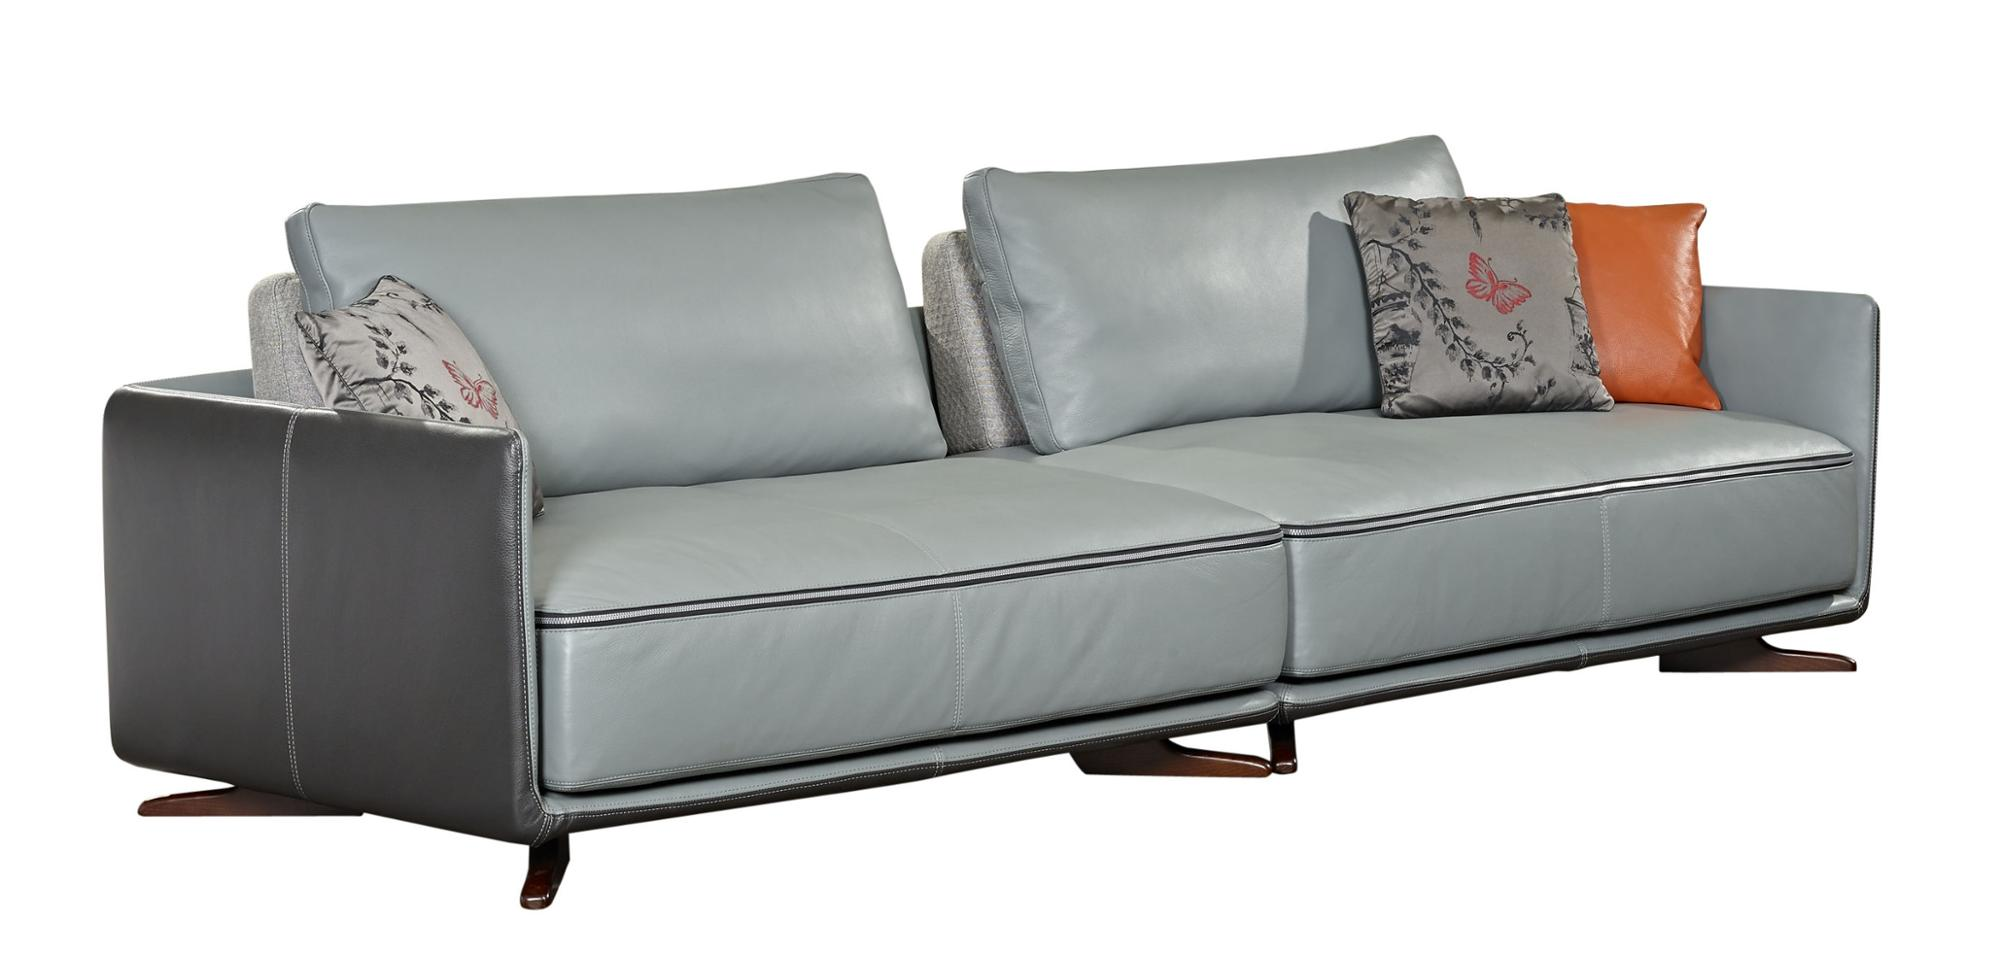 Italian Style Simple Design Modern Latest Leather Sofa Set With Meatal Frame